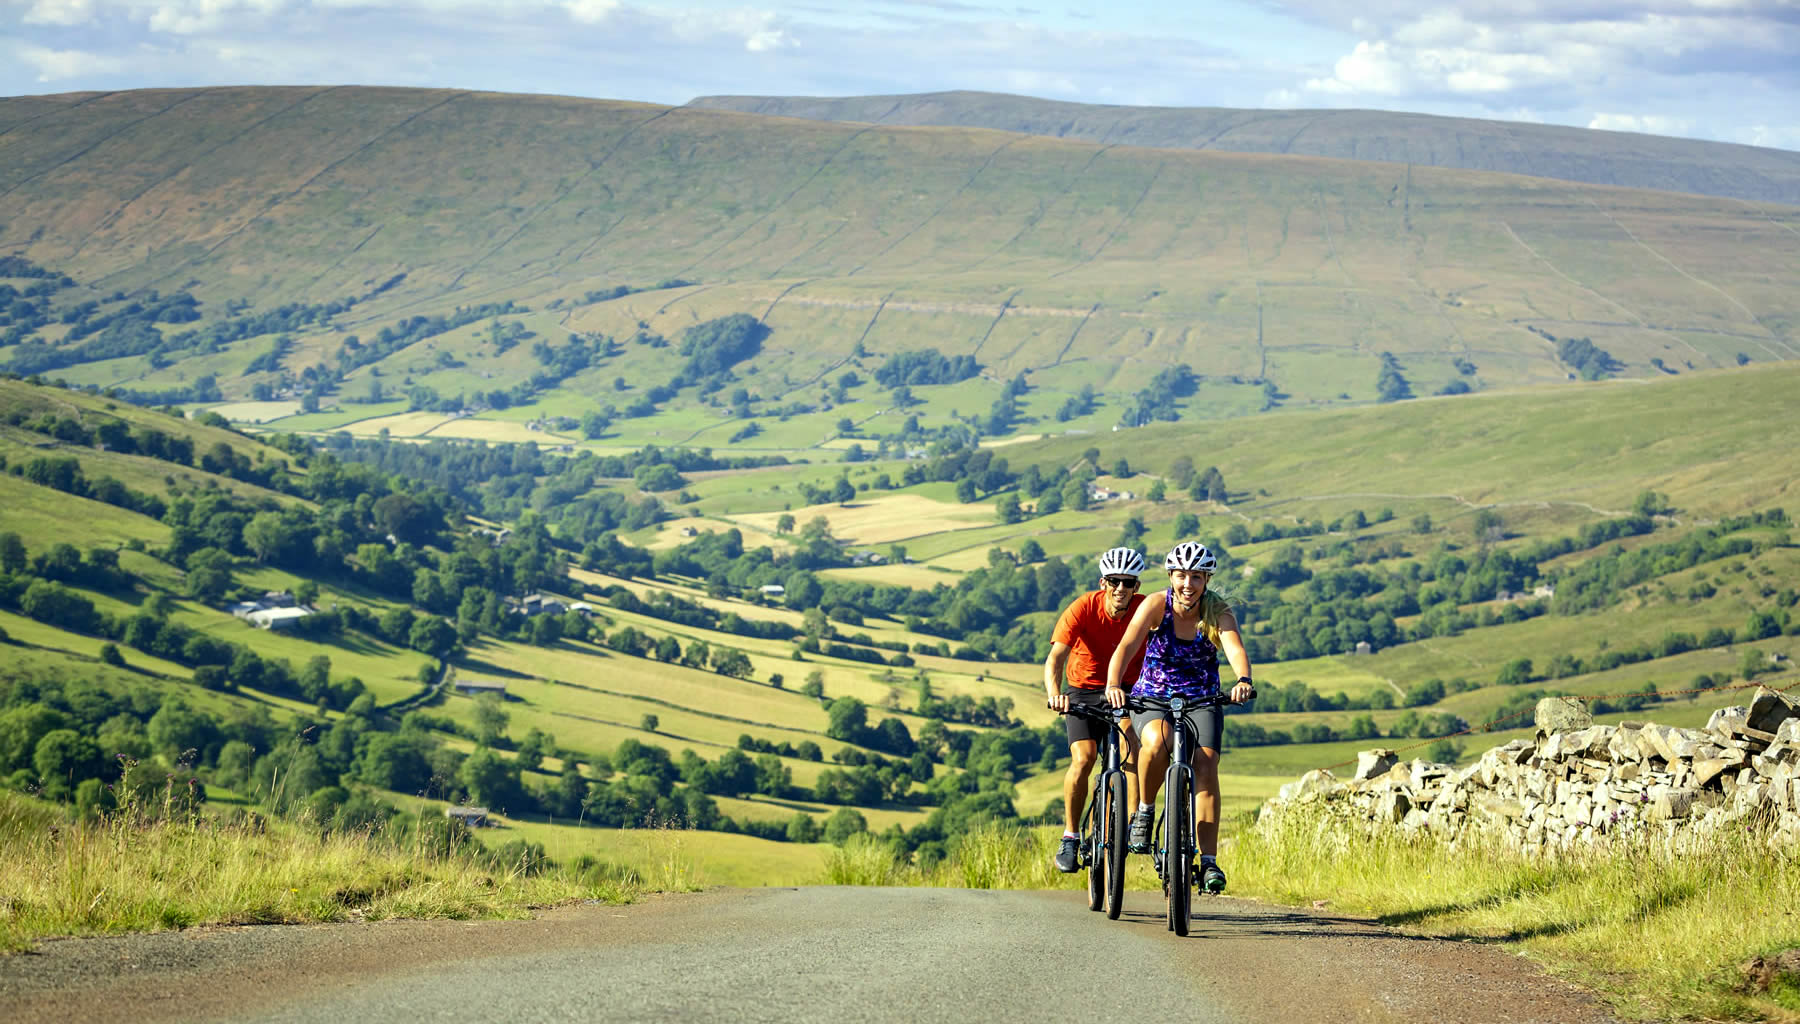 https://www.yorkshire.com/media/58061/cycling-the-yorkshire-dales.jpg